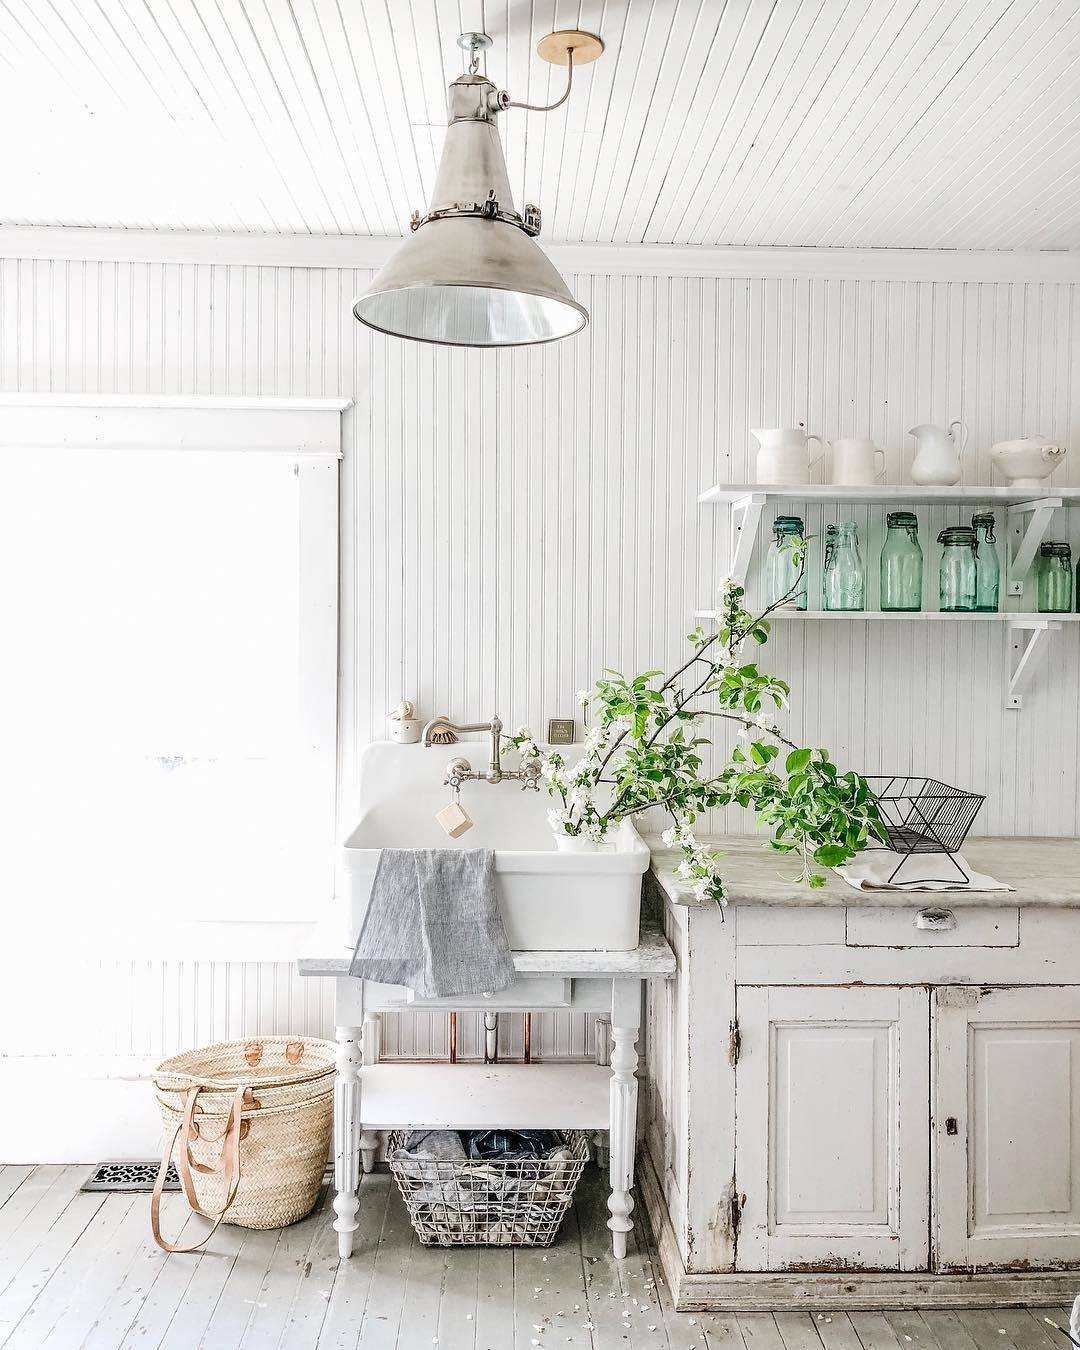 Dreamy Whites Lifestyle On Instagram Our French Canning Jars And